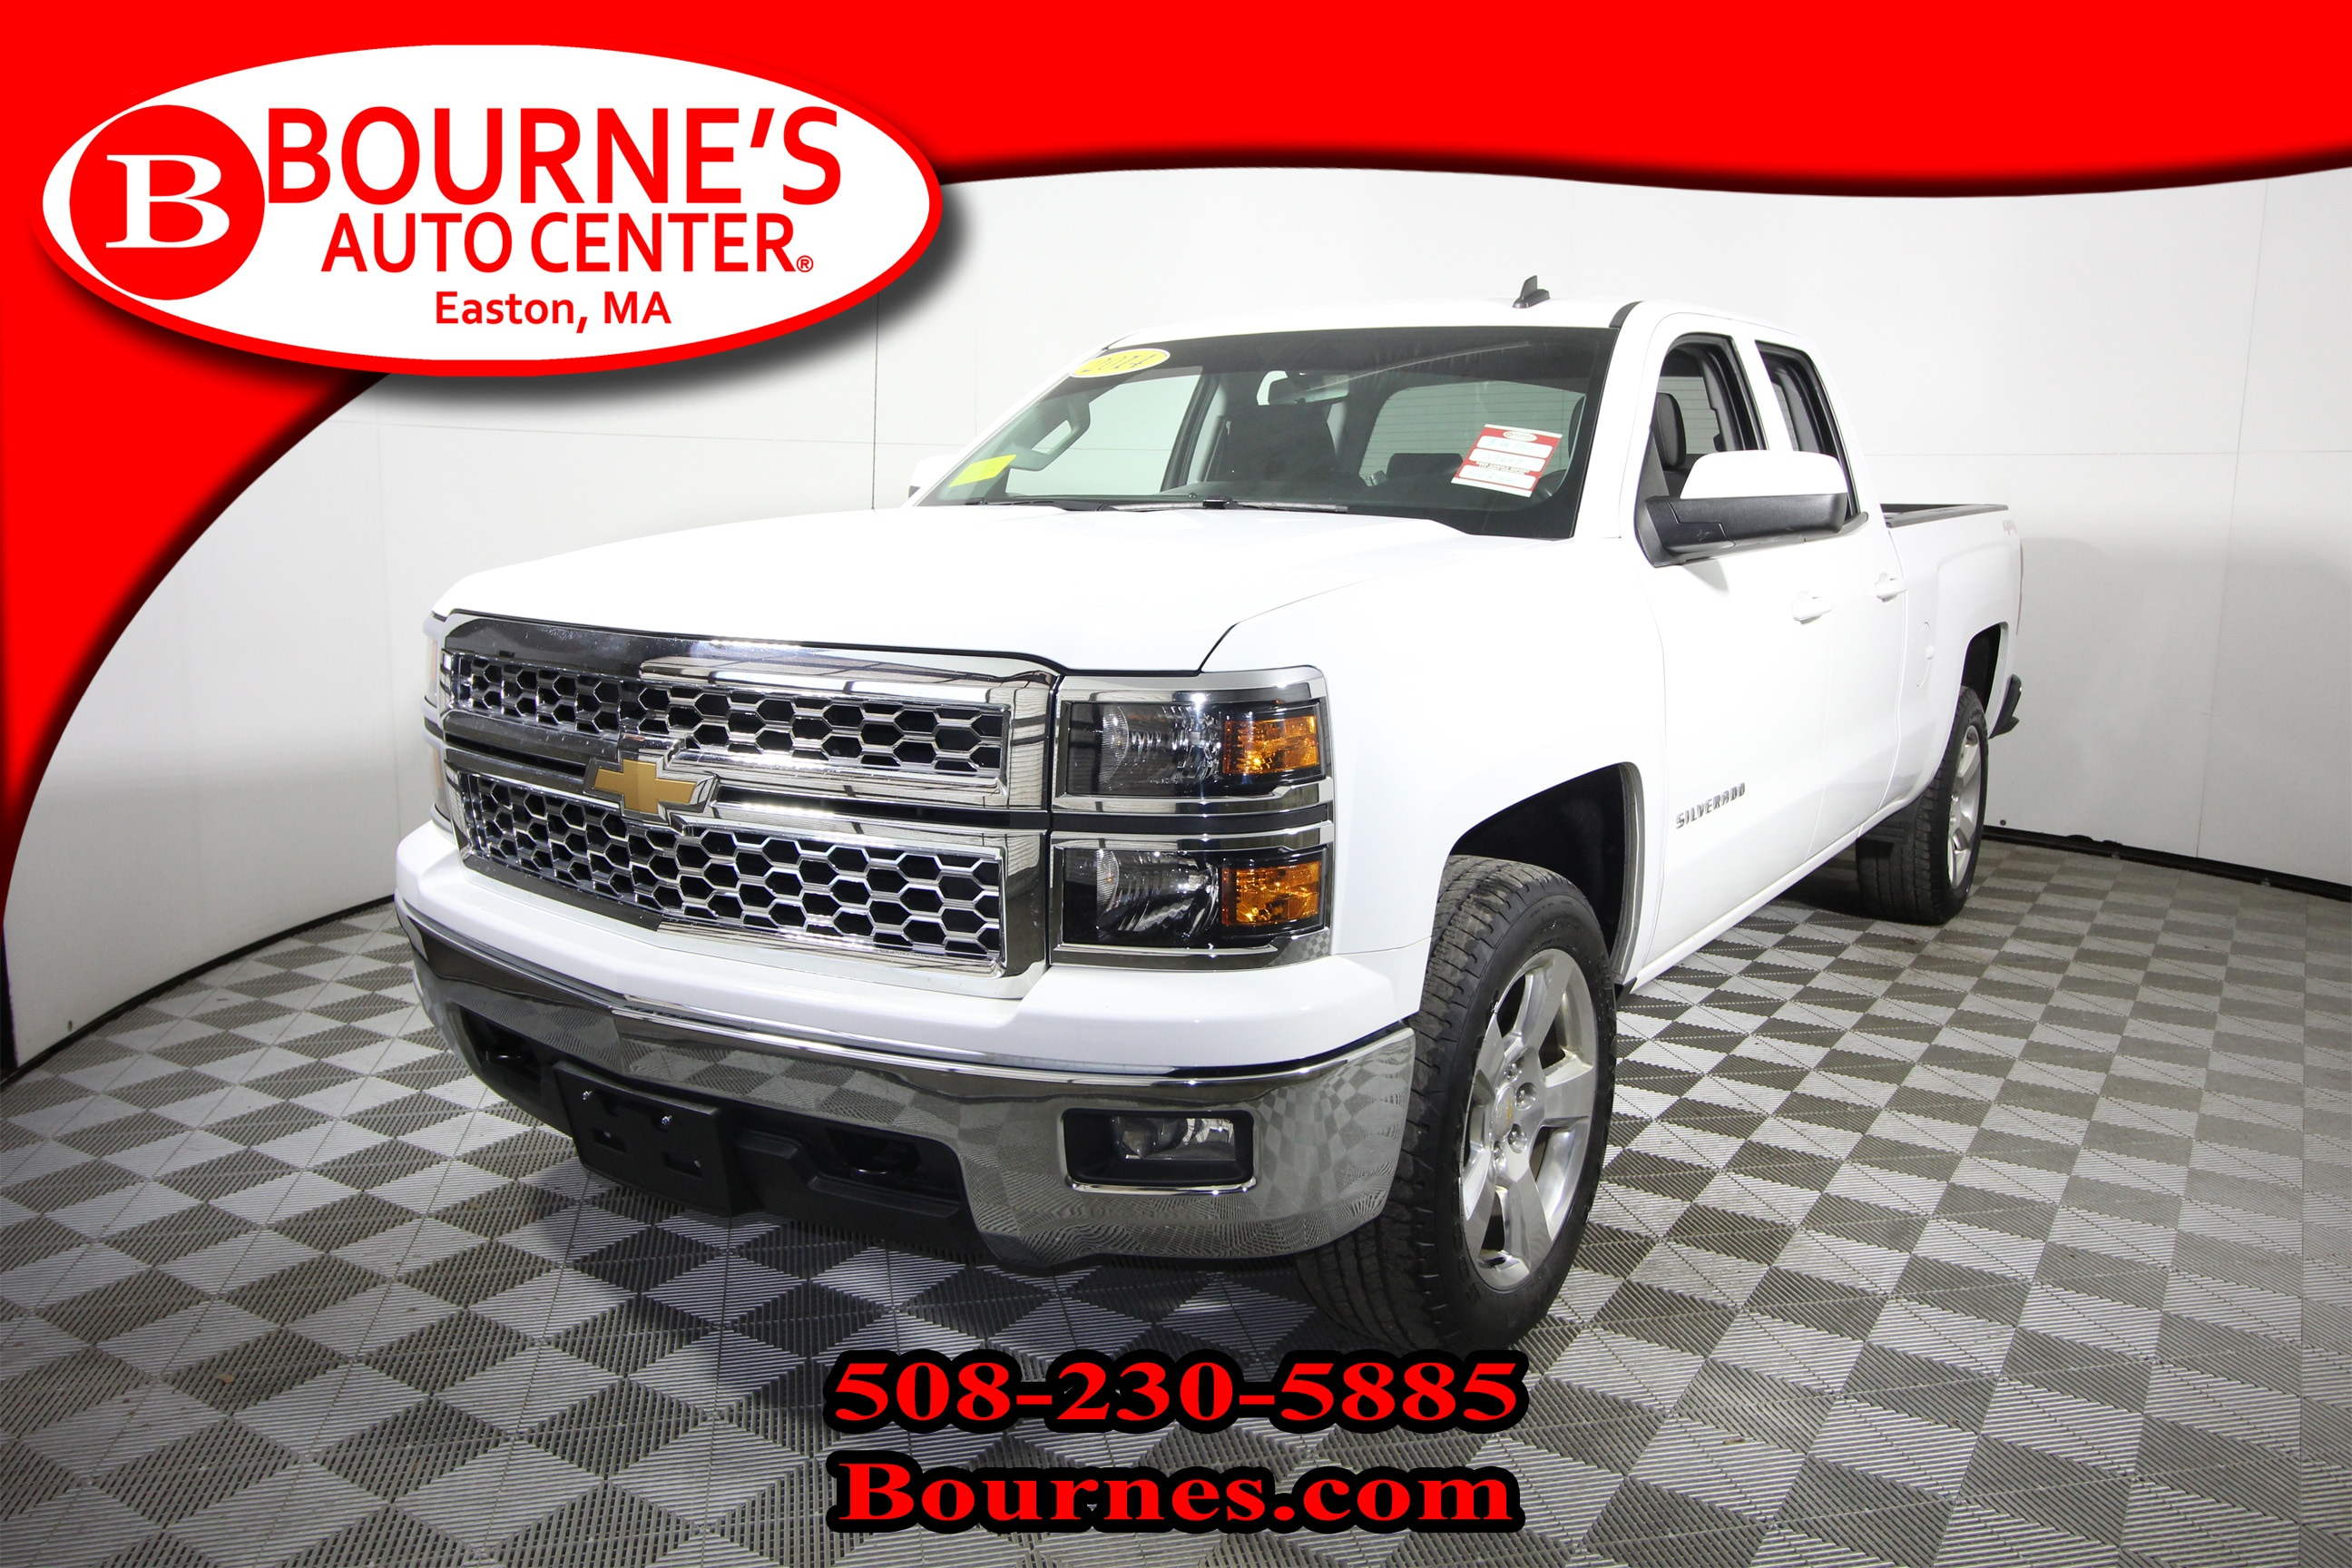 2014 Chevrolet Silverado 1500 Double Cab 4WD LT w/ Heated Front Seats And Backup Truck Double Cab